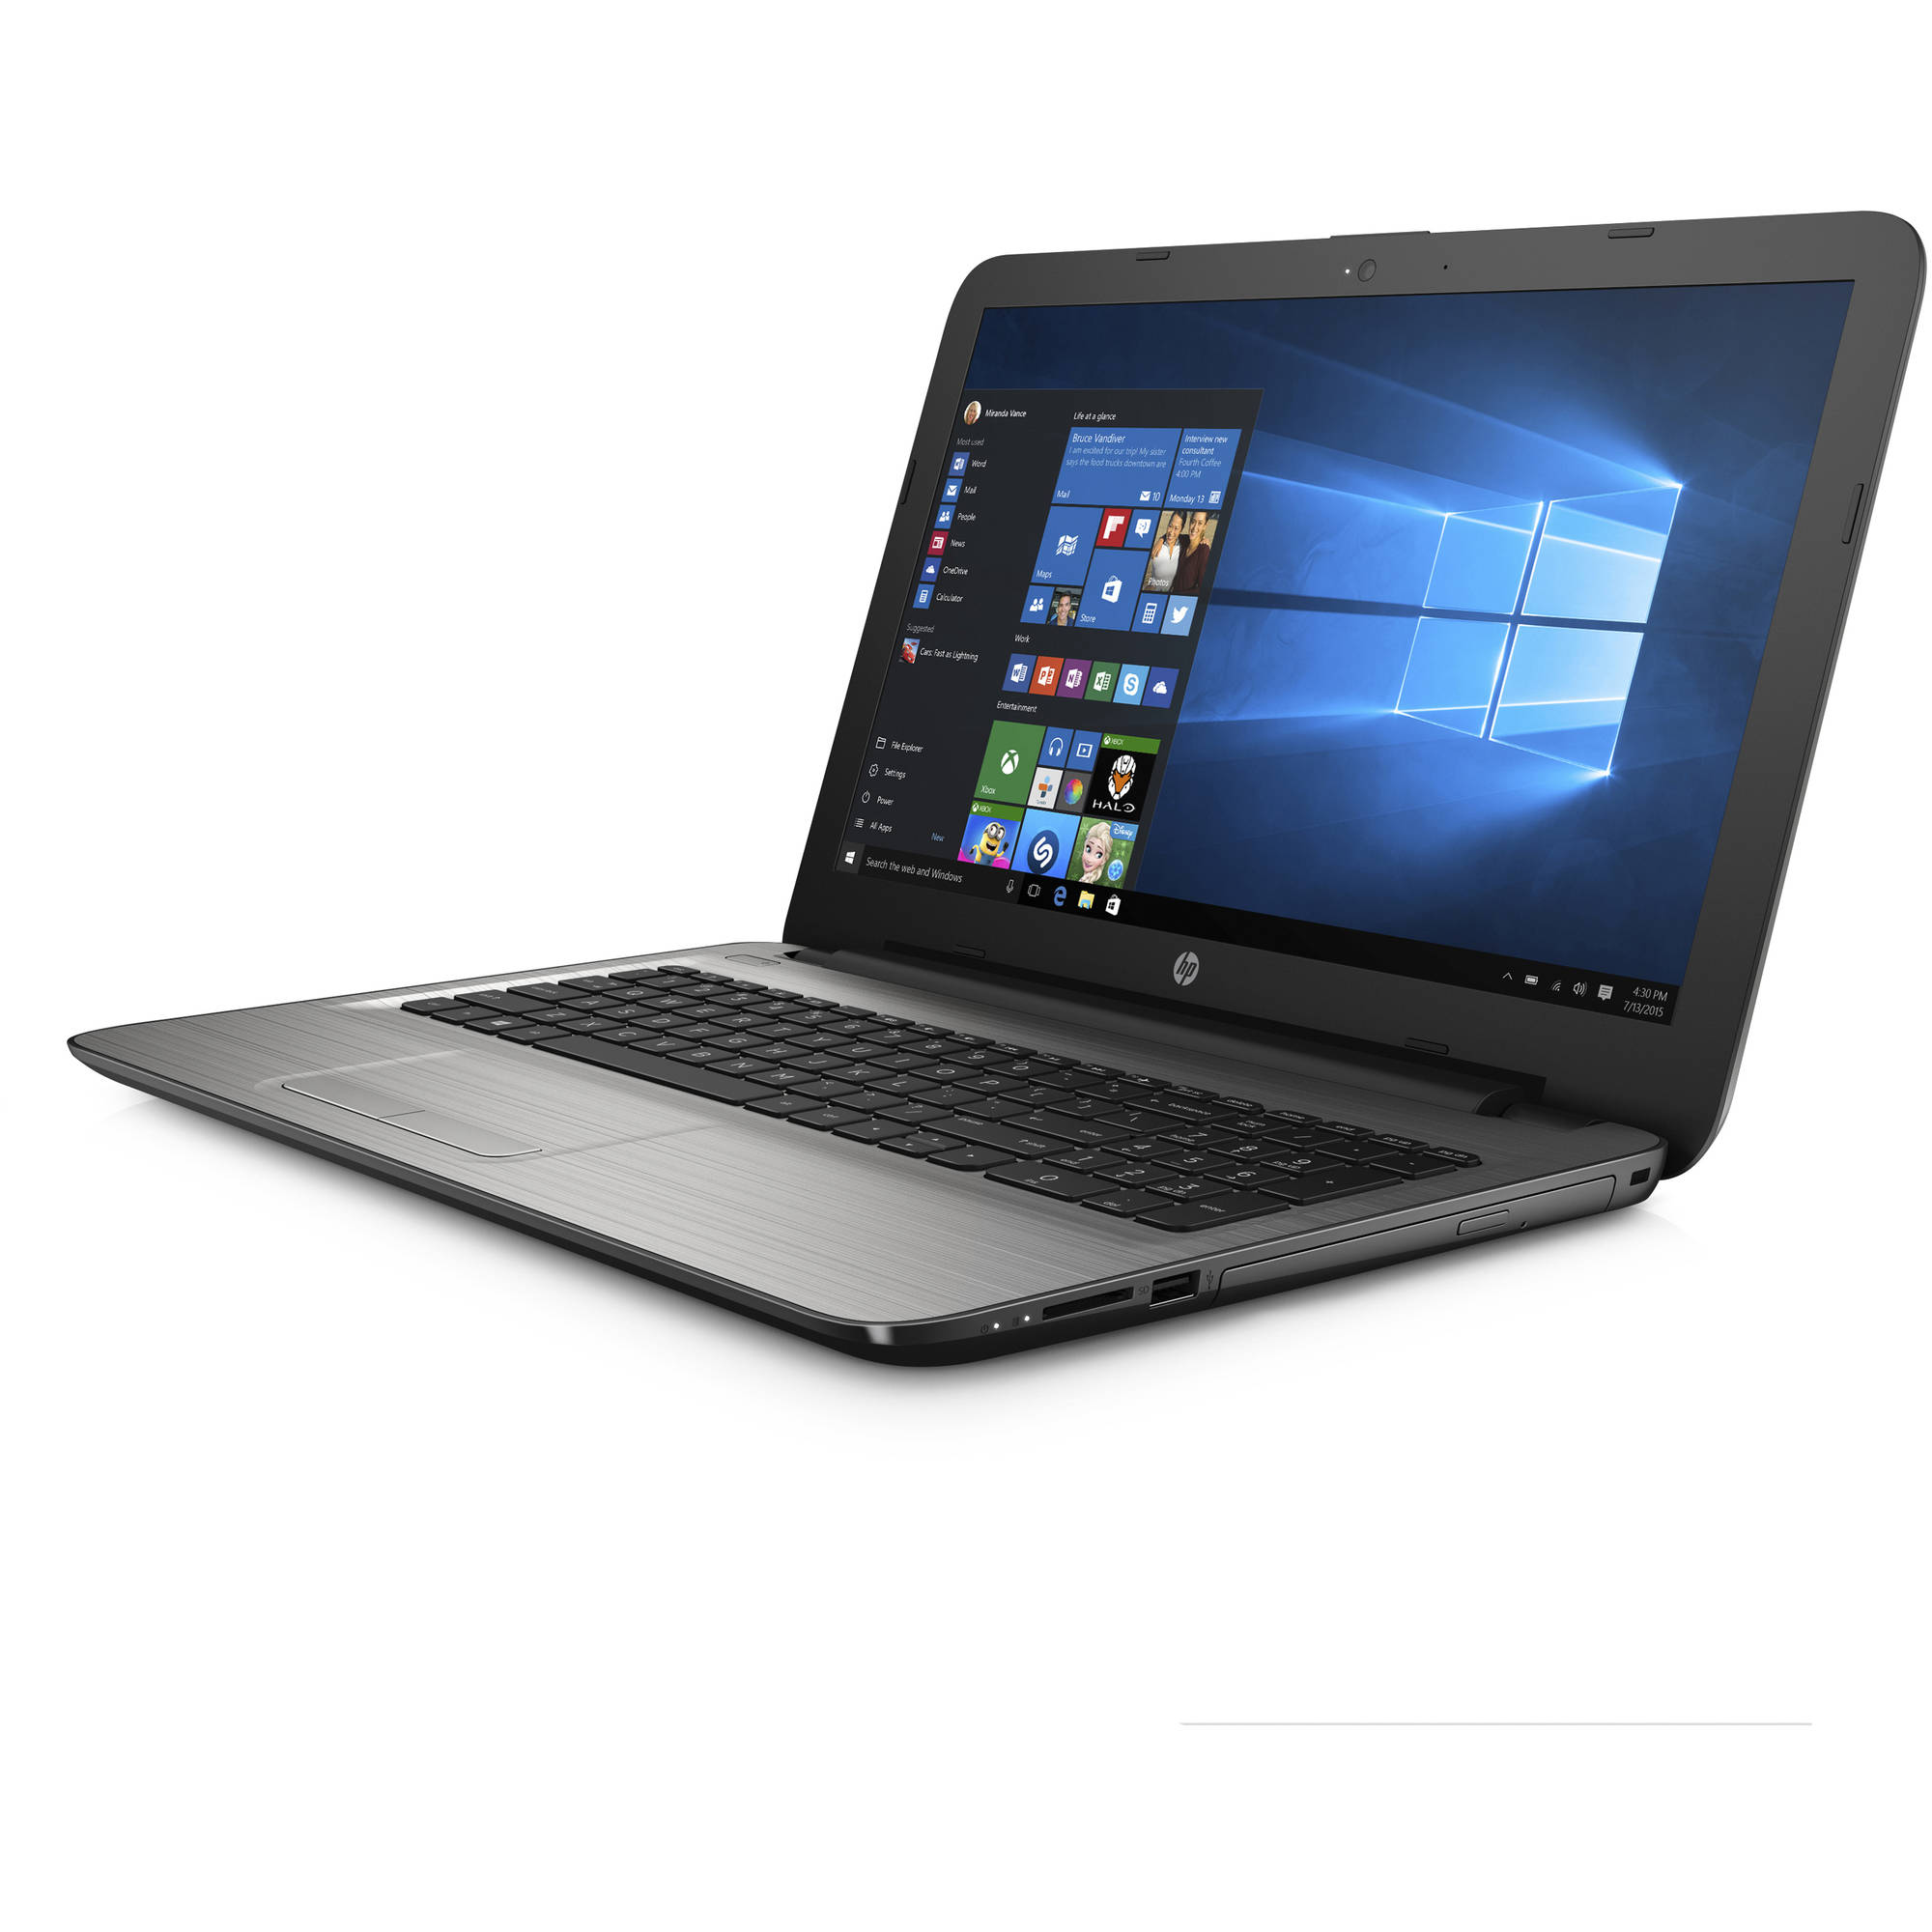 "hp 15 ay041wm 15.6"" silver fusion laptop, touch screen"